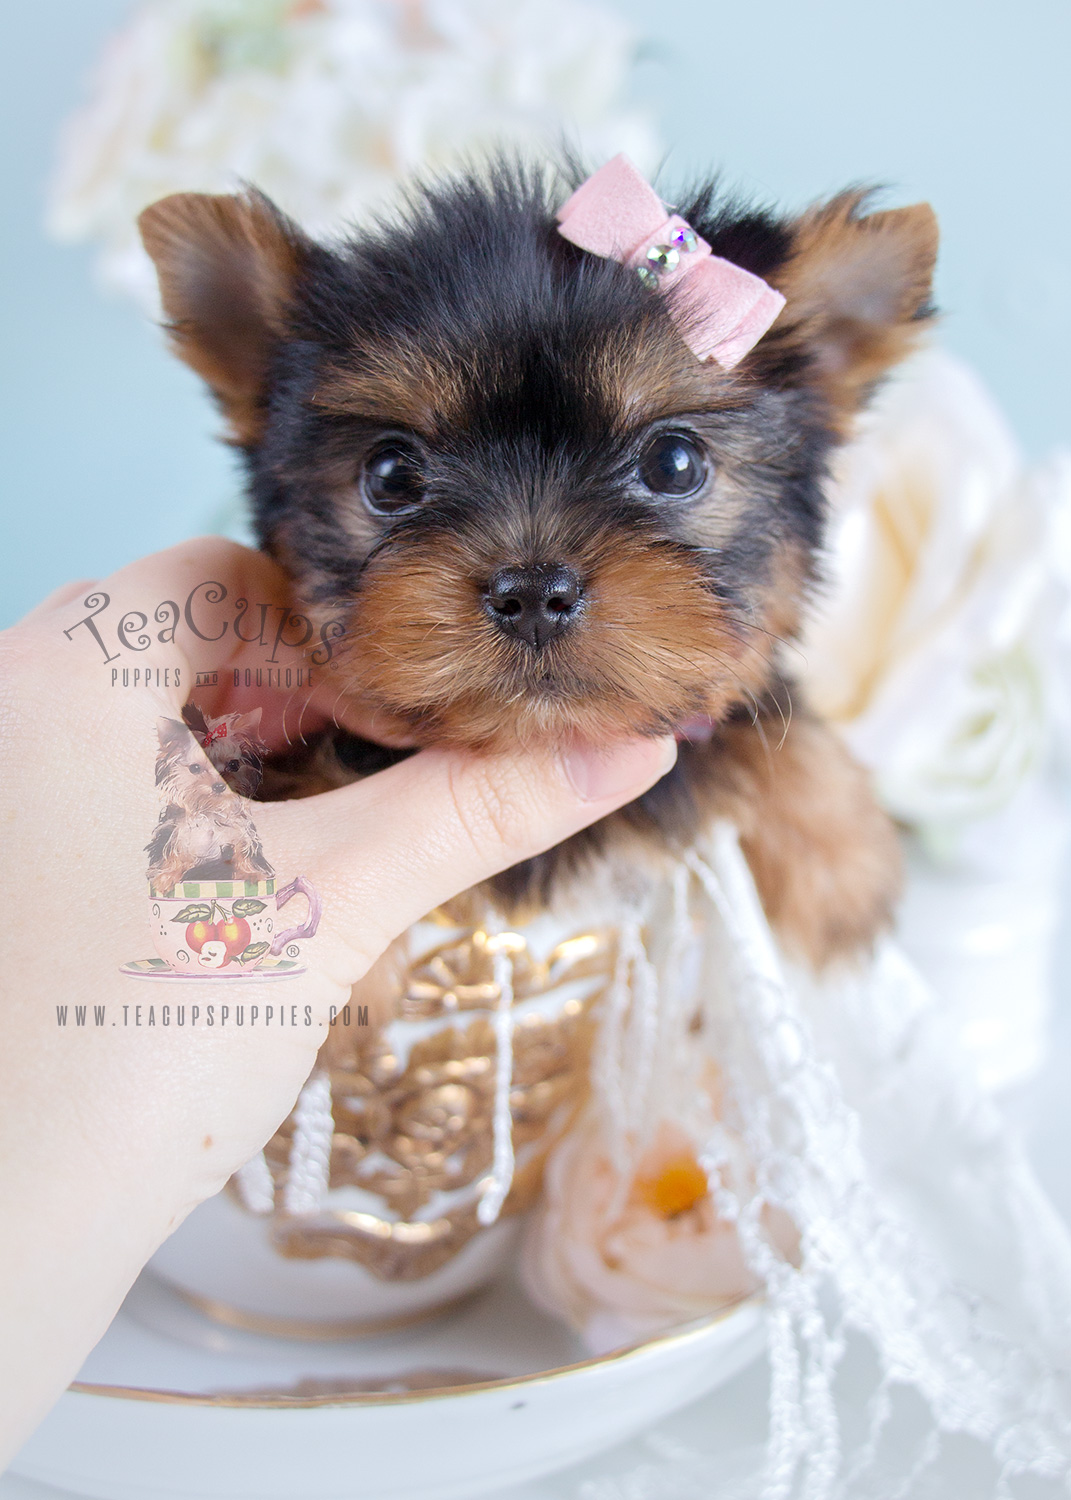 For Sale #276 Tiny Yorkshire Terrier Puppy